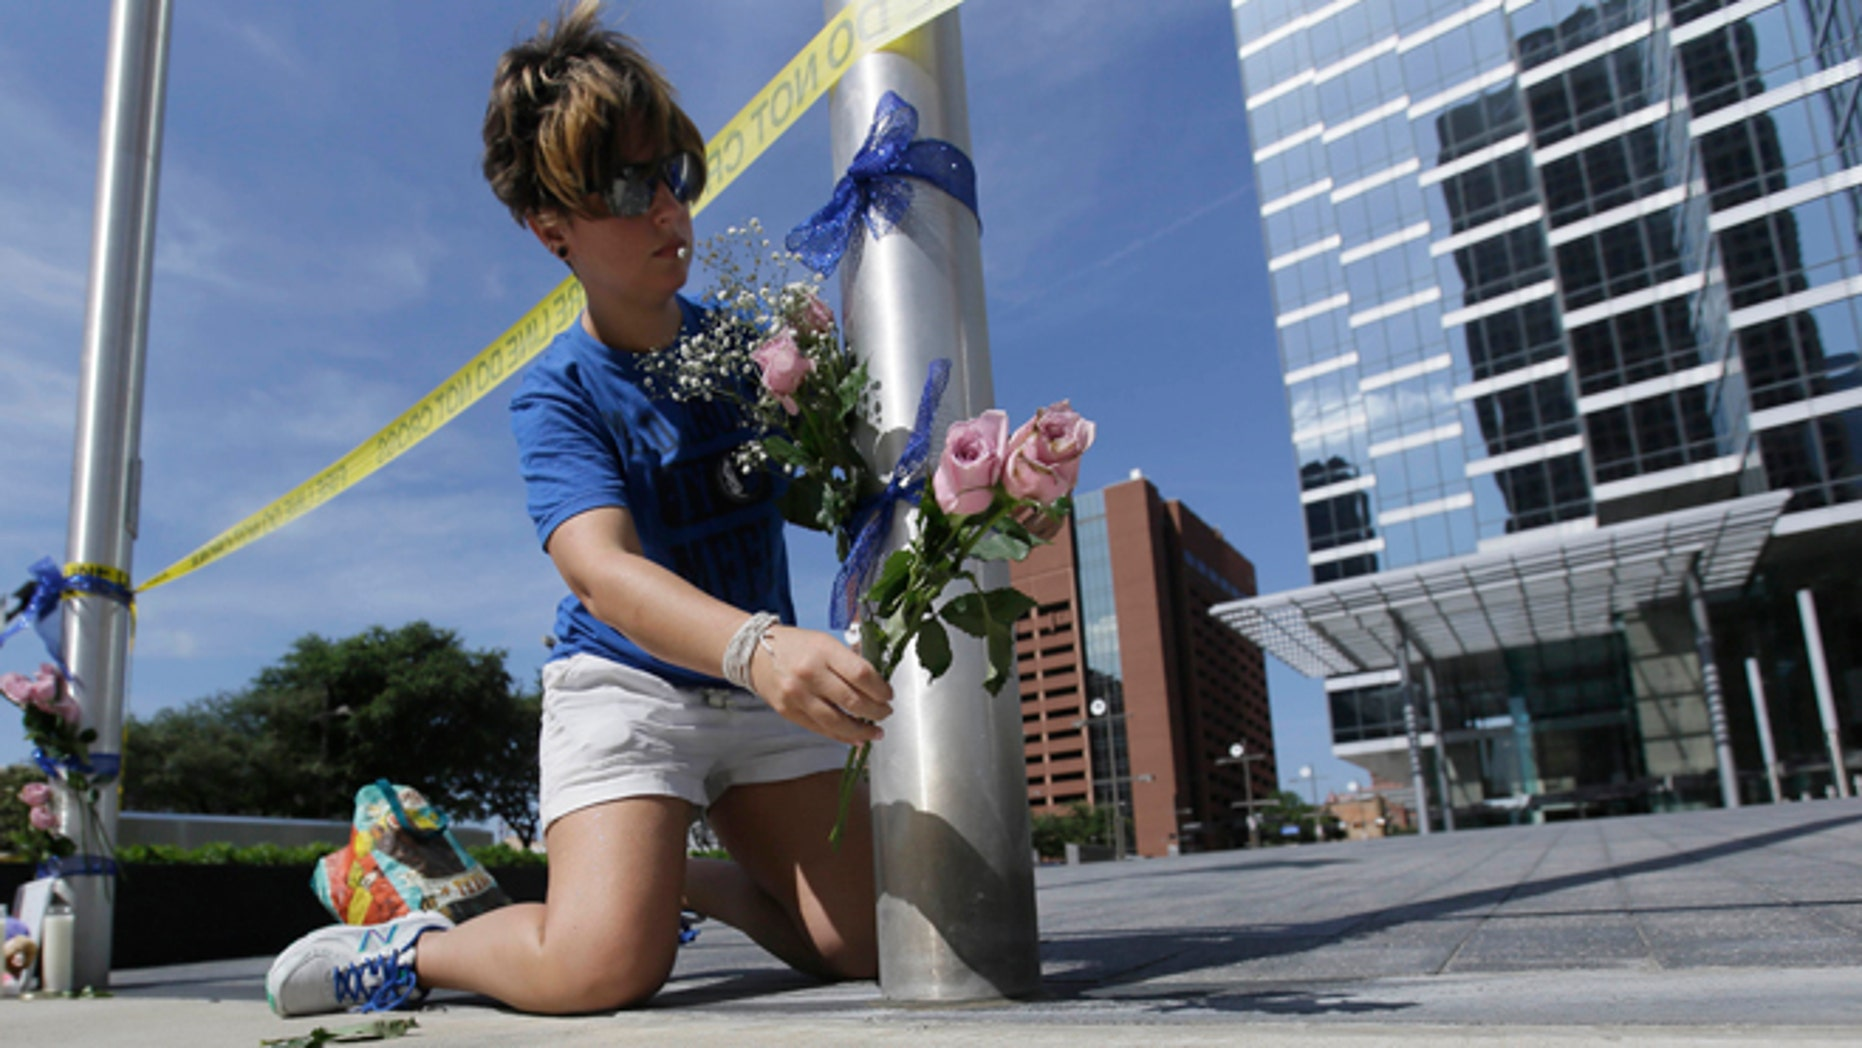 Noelle Hendrix places flowers near the scene of a shooting in downtown Dallas, Friday, July 8, 2016. Snipers opened fire on police officers in the heart of Dallas during protests over two recent fatal police shootings of black men. (AP Photo/LM Otero)